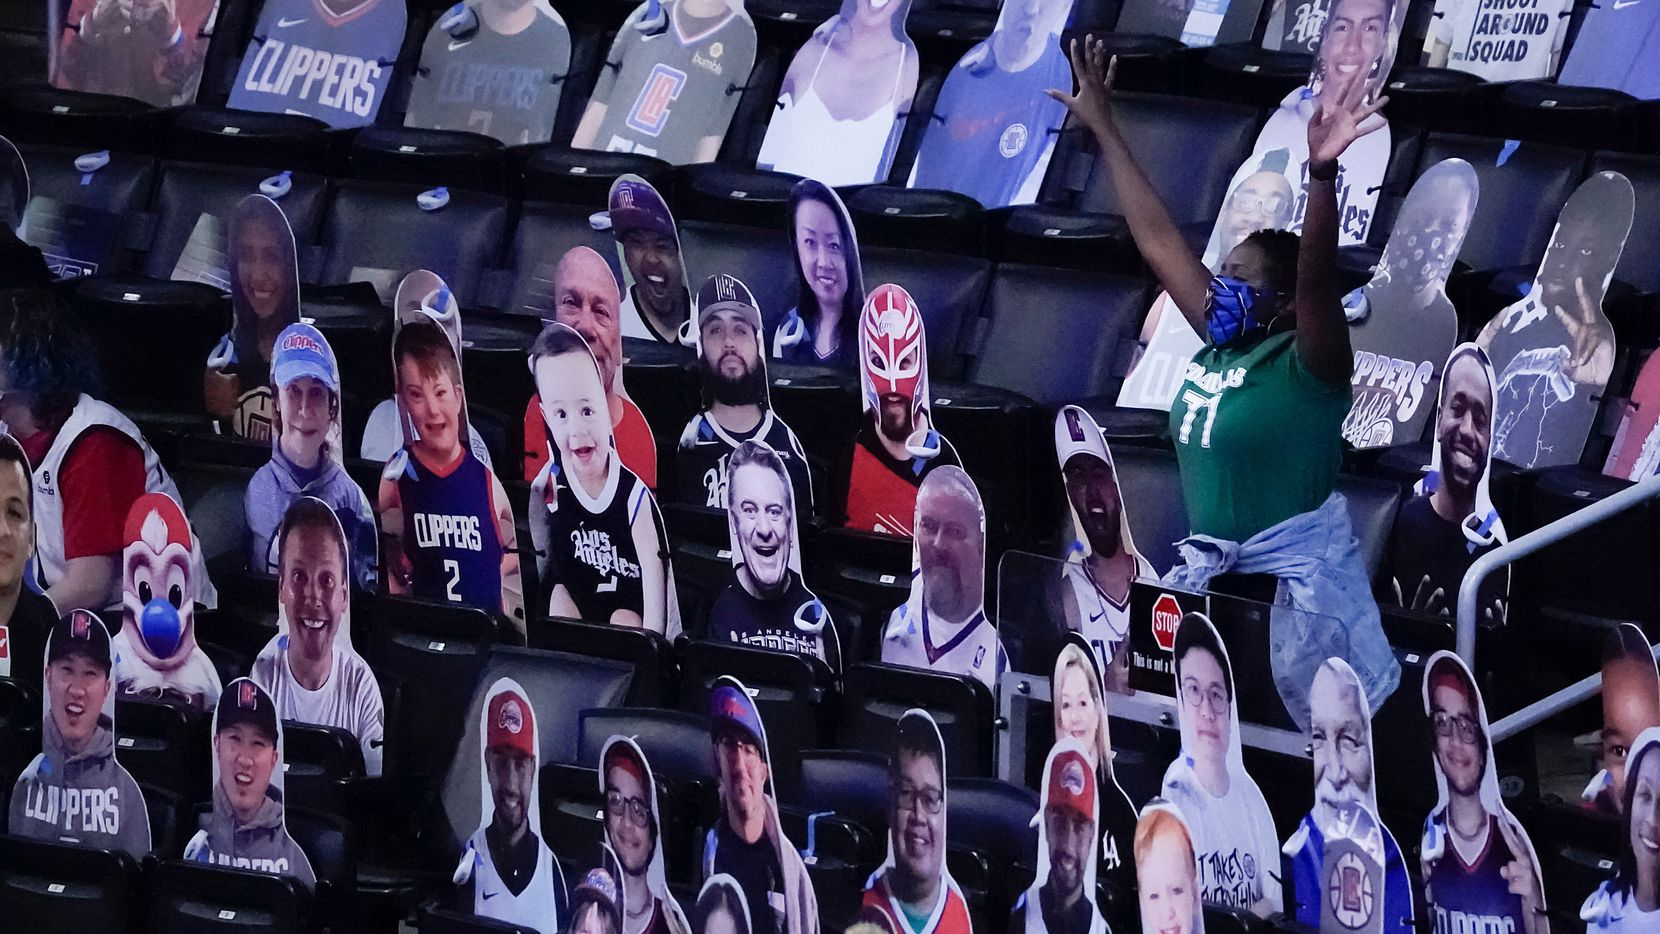 A Dallas Mavericks fan celebrates a113-103 victory over the LA Clippers in an NBA playoff basketball game at Staples Center on Saturday, May 22, 2021, in Los Angeles.